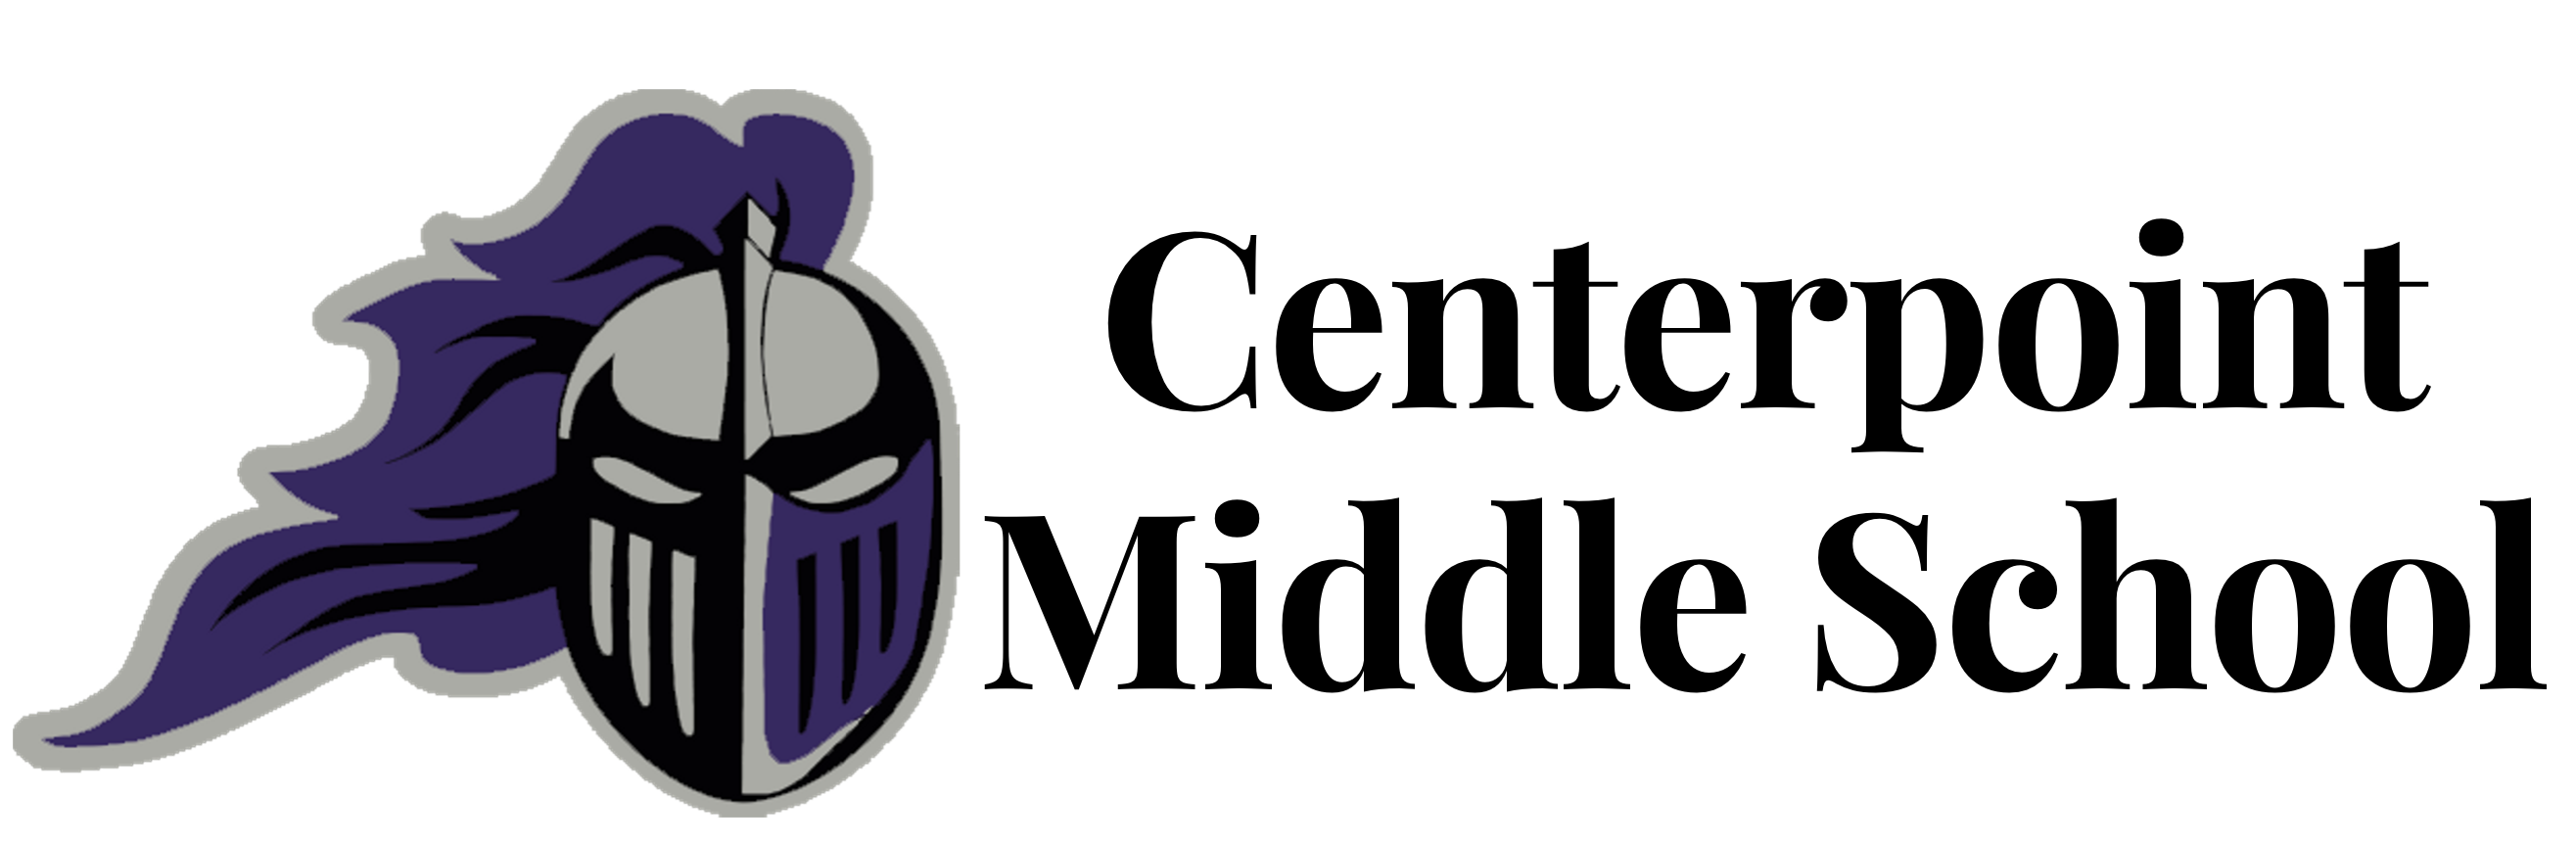 Centerpoint Middle School Banner